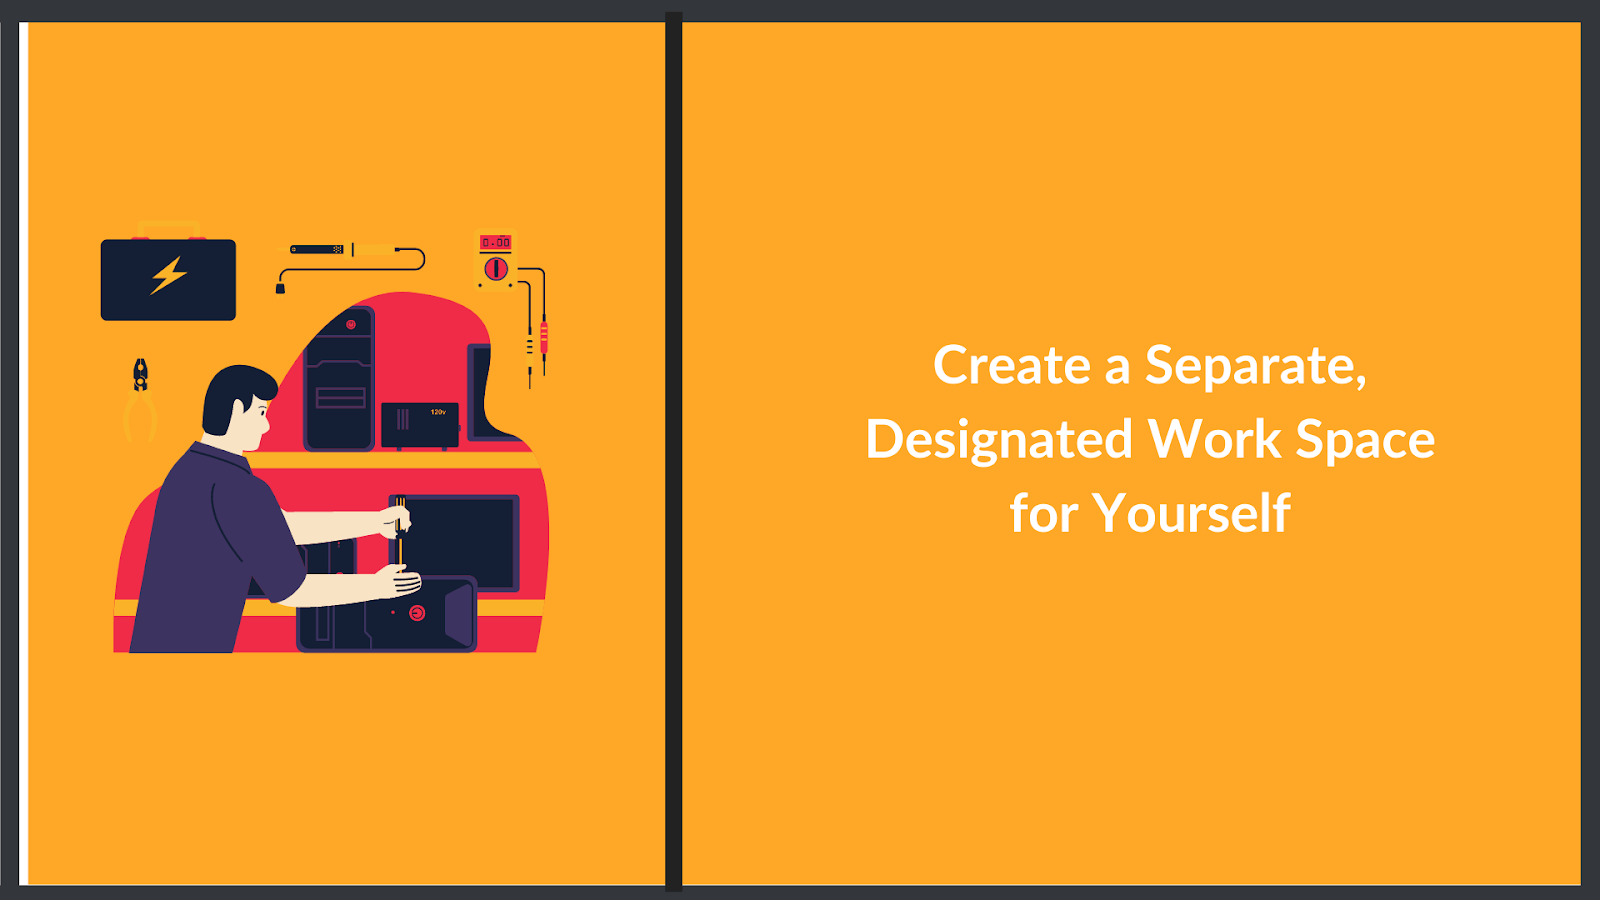 create a designated work space for yourself